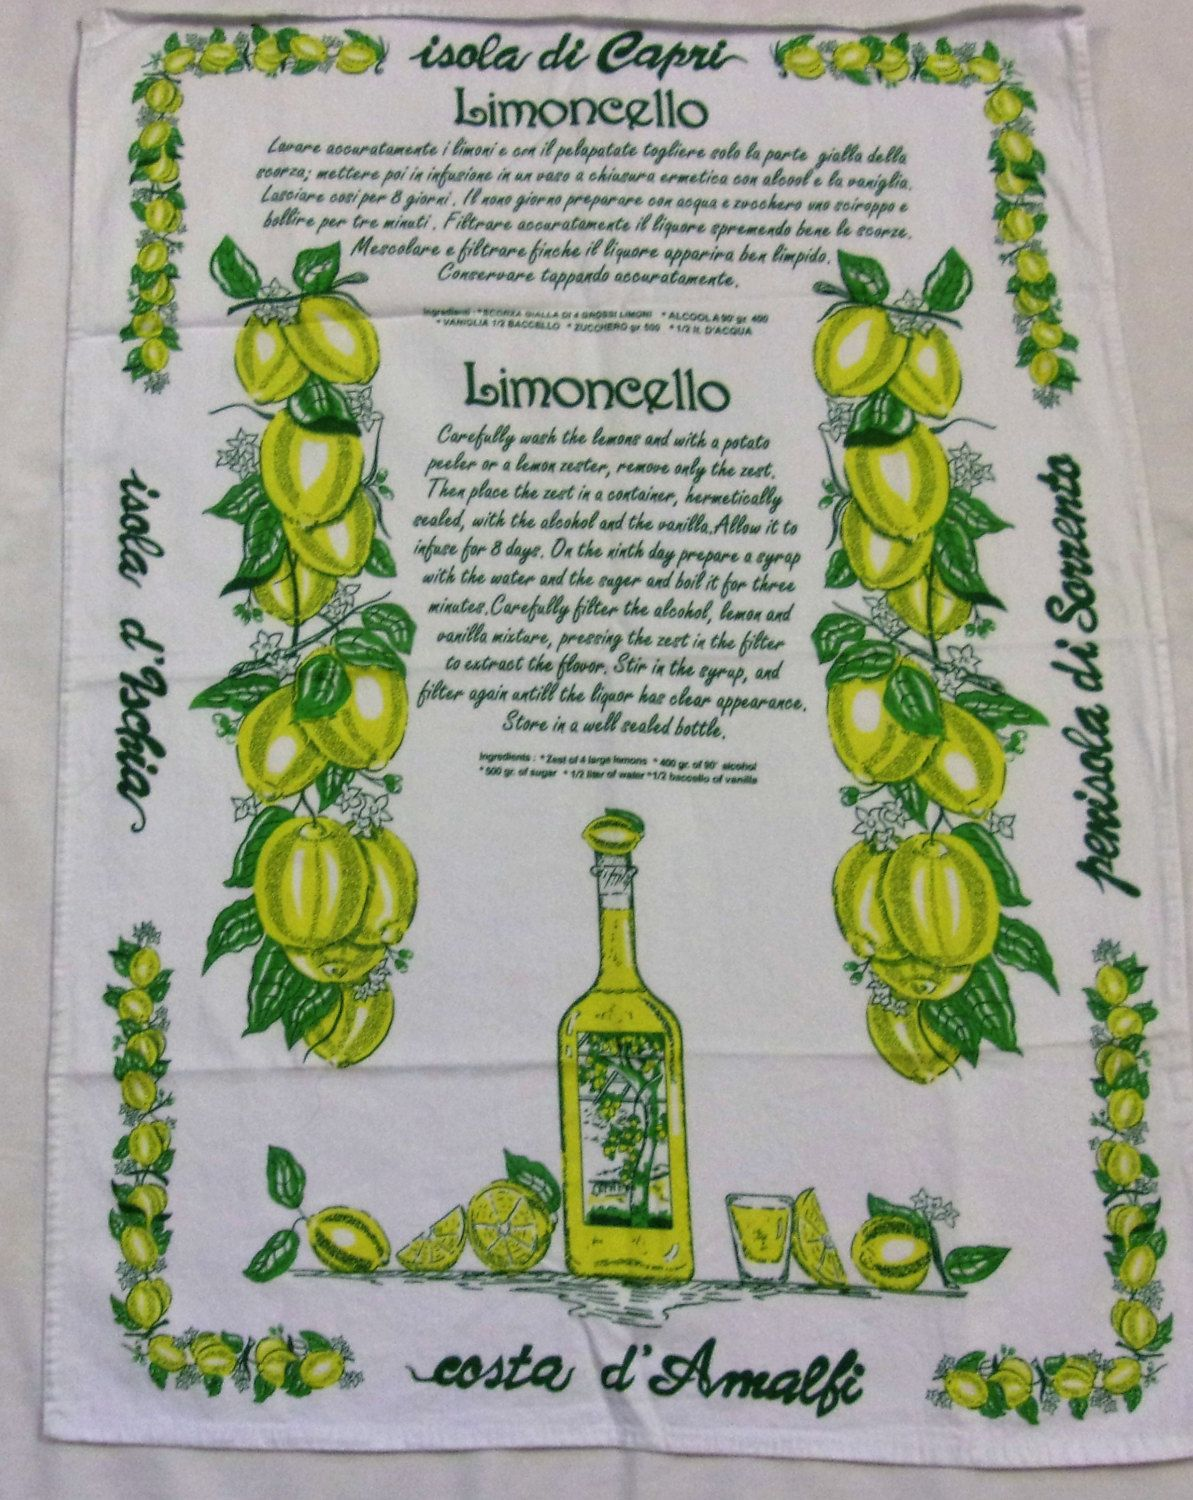 Limoncello Recipe Italy Souvenir Cotton Towel Italian Costa D Amalfi Mixed Drink Recipe Limoncello Mixed Drinks Recipes Limoncello Recipe